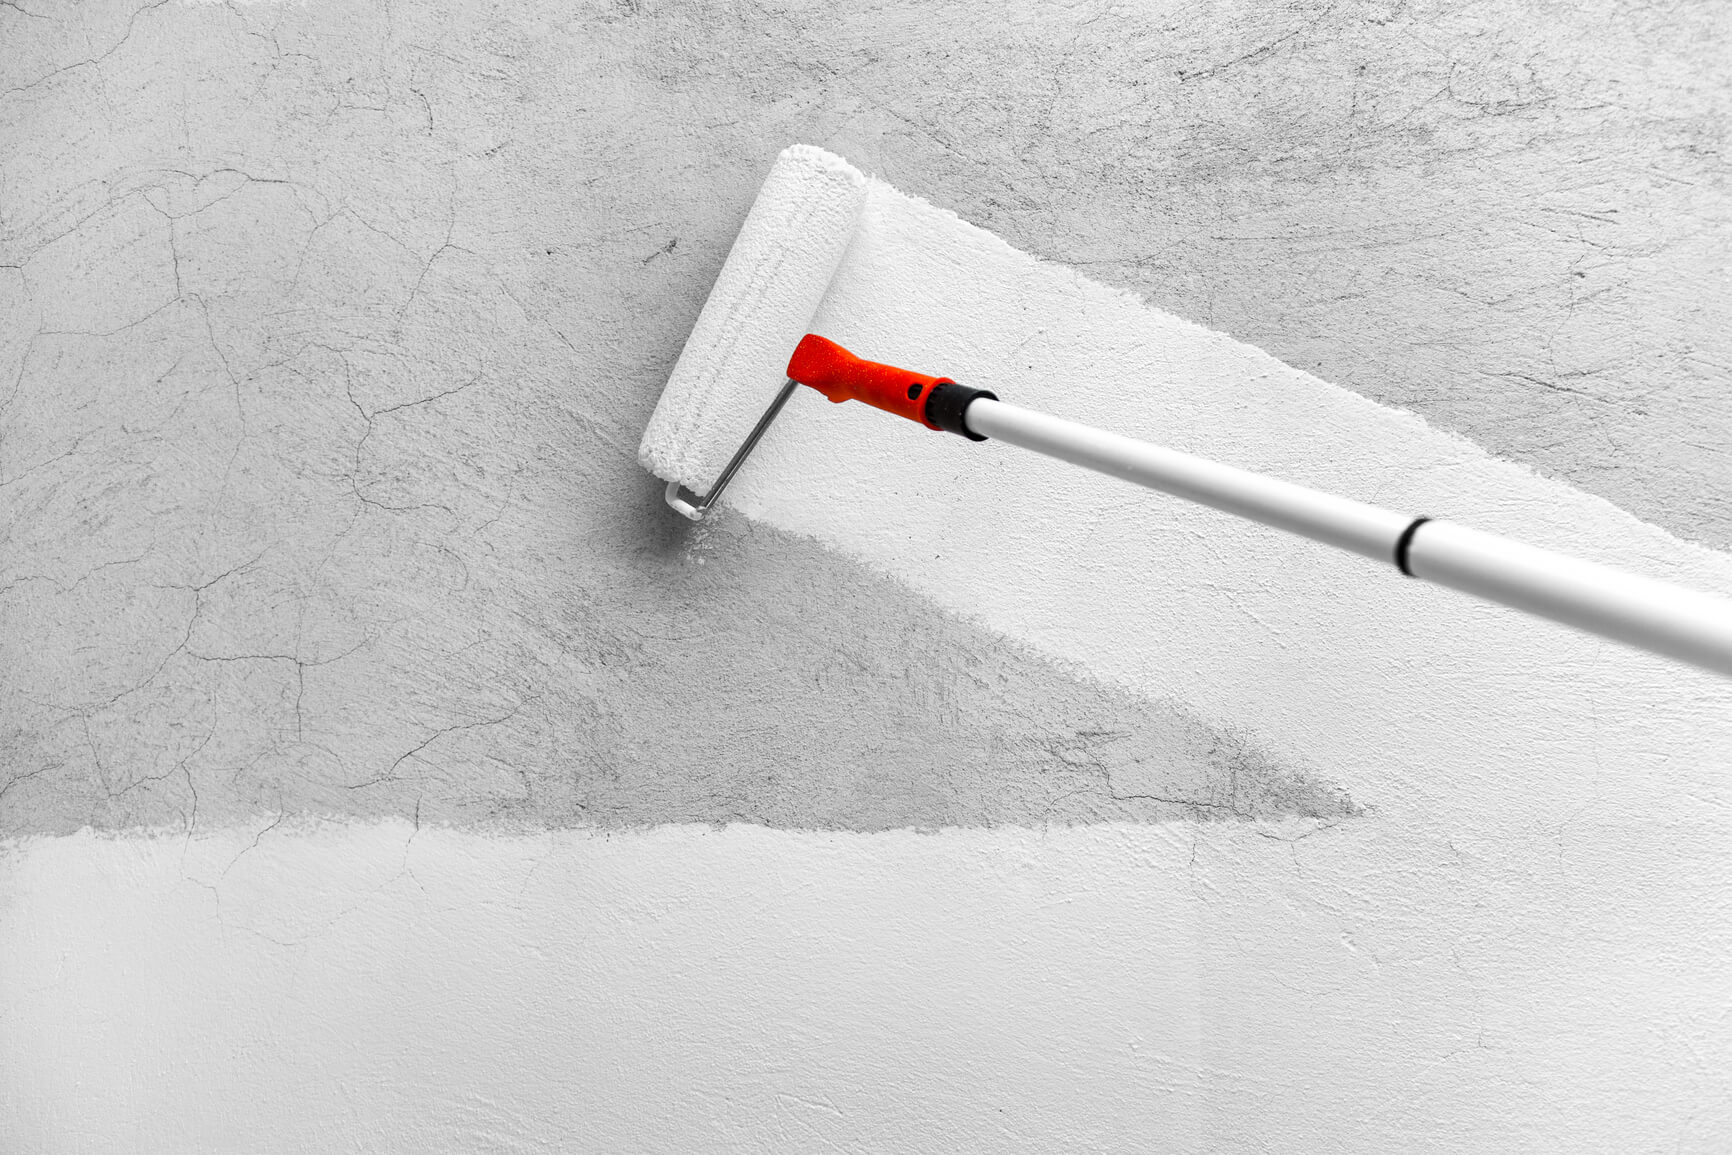 Primer Painting-Midland TX Professional Painting Contractors-We offer Residential & Commercial Painting, Interior Painting, Exterior Painting, Primer Painting, Industrial Painting, Professional Painters, Institutional Painters, and more.